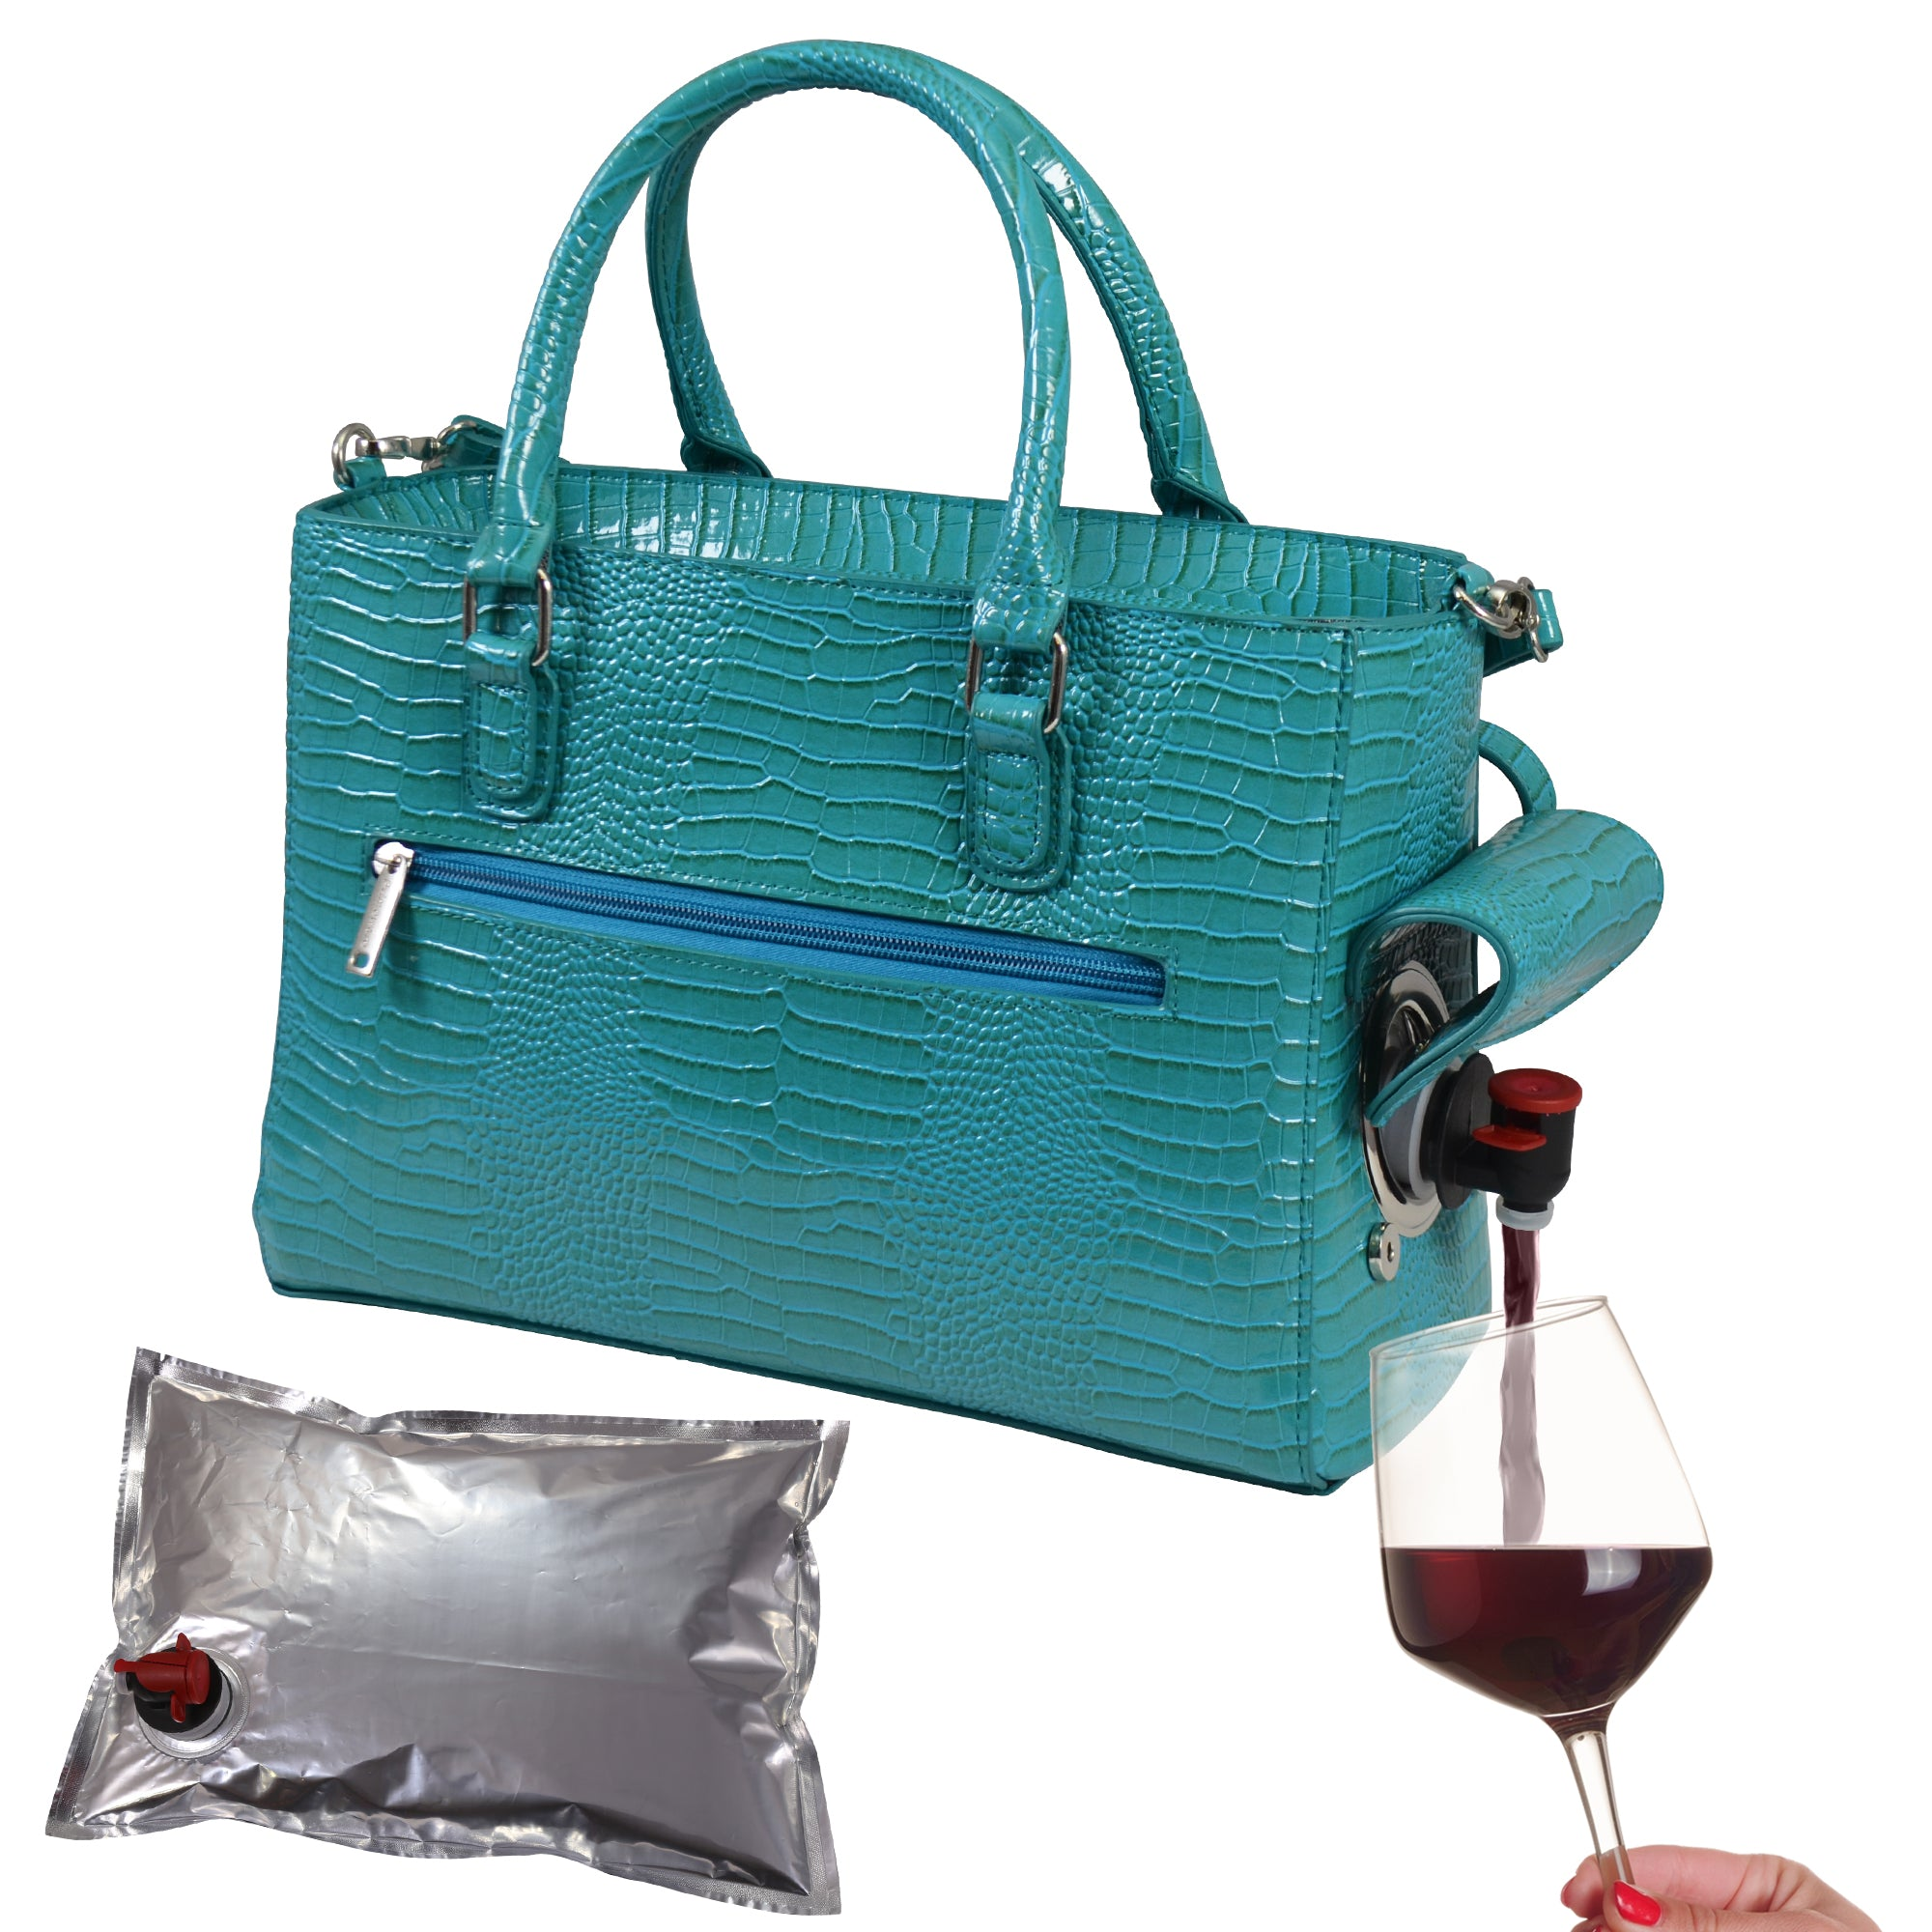 Drink Purse Croc Design - primewareinc